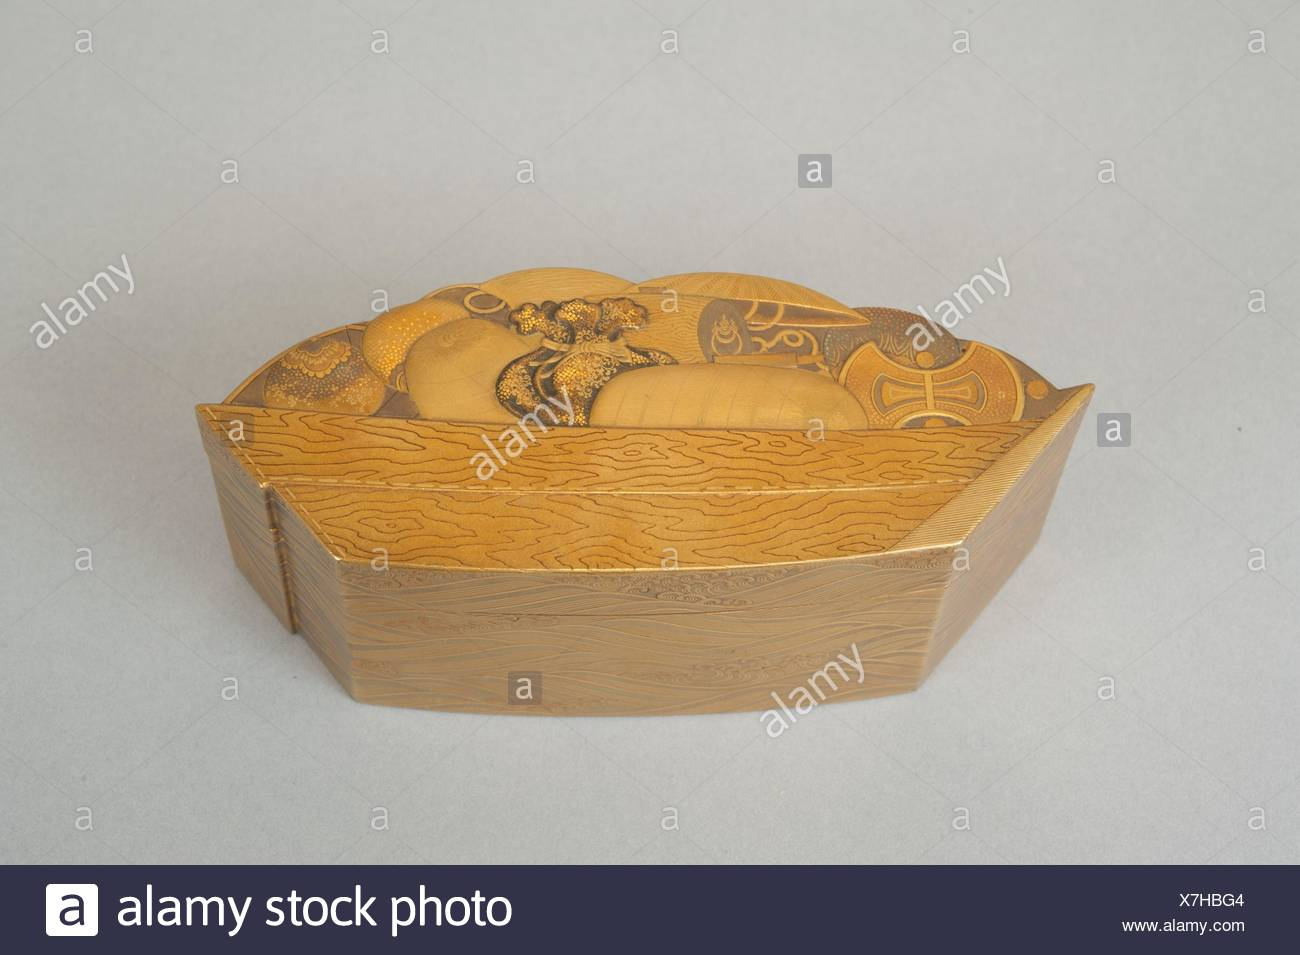 Treasure Boat-shaped Incense Box [Kogo]. Period: Edo period (1615-1868); Date: 17th century; Culture: Japan; Medium: Lacquered wood, gold and maki-e Stock Photo